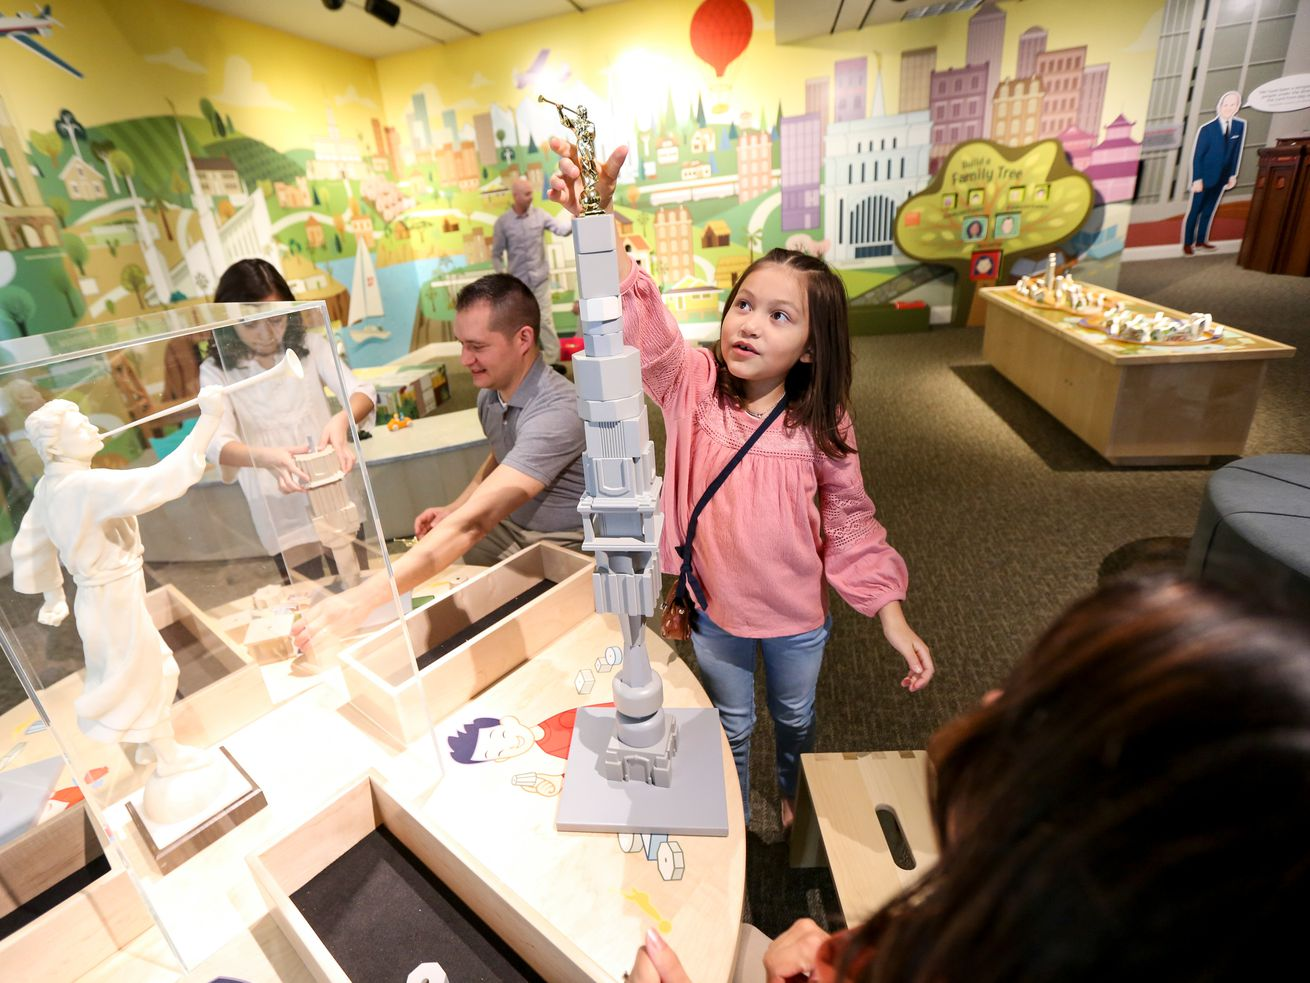 New Church History Museum 'temples' exhibit designed to engage, educate children